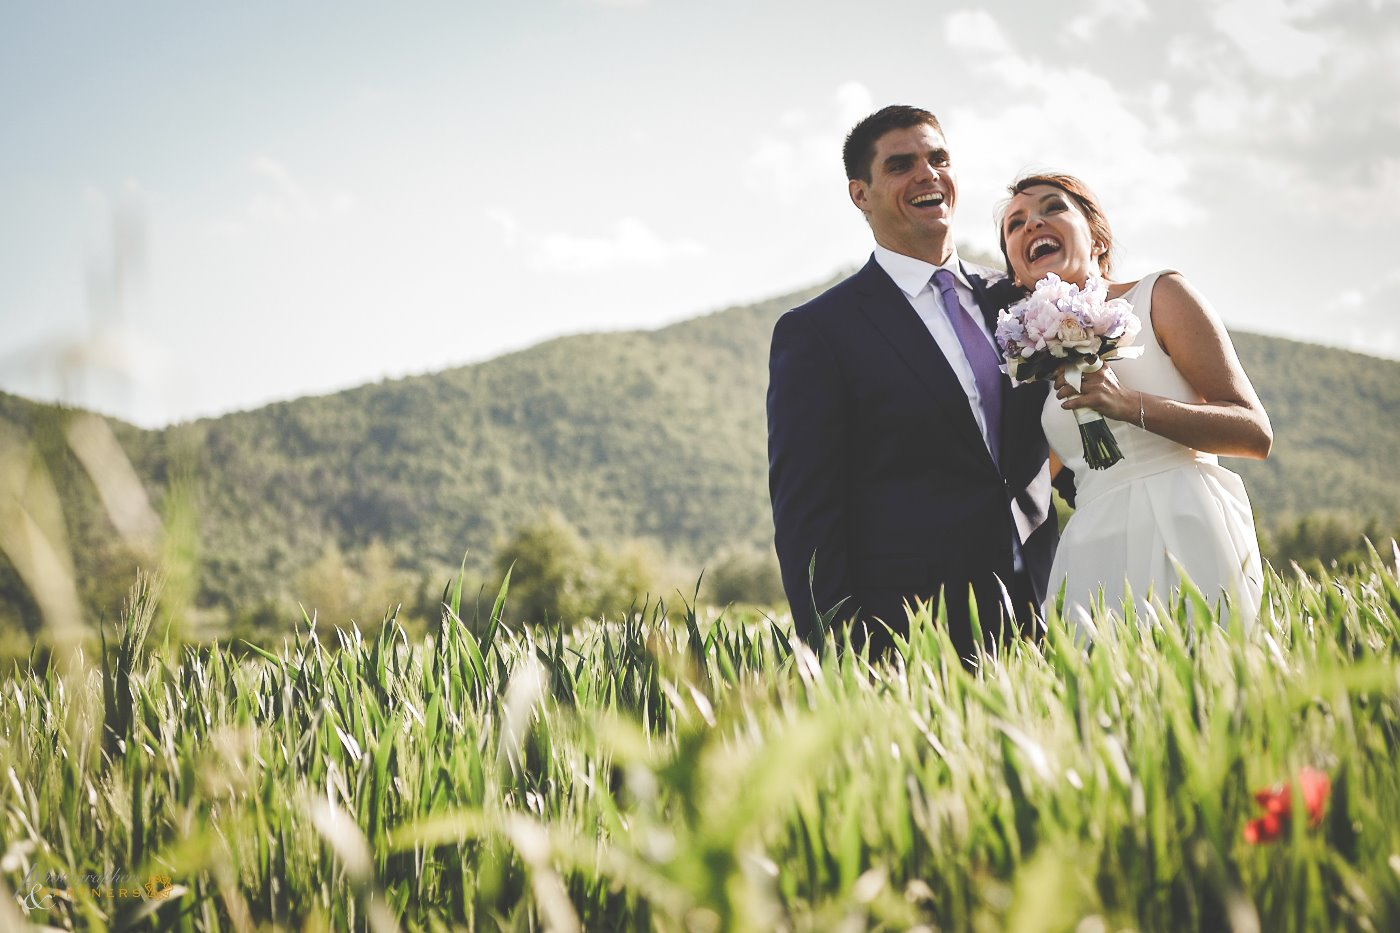 photographer_weddings_cortona_15.jpg